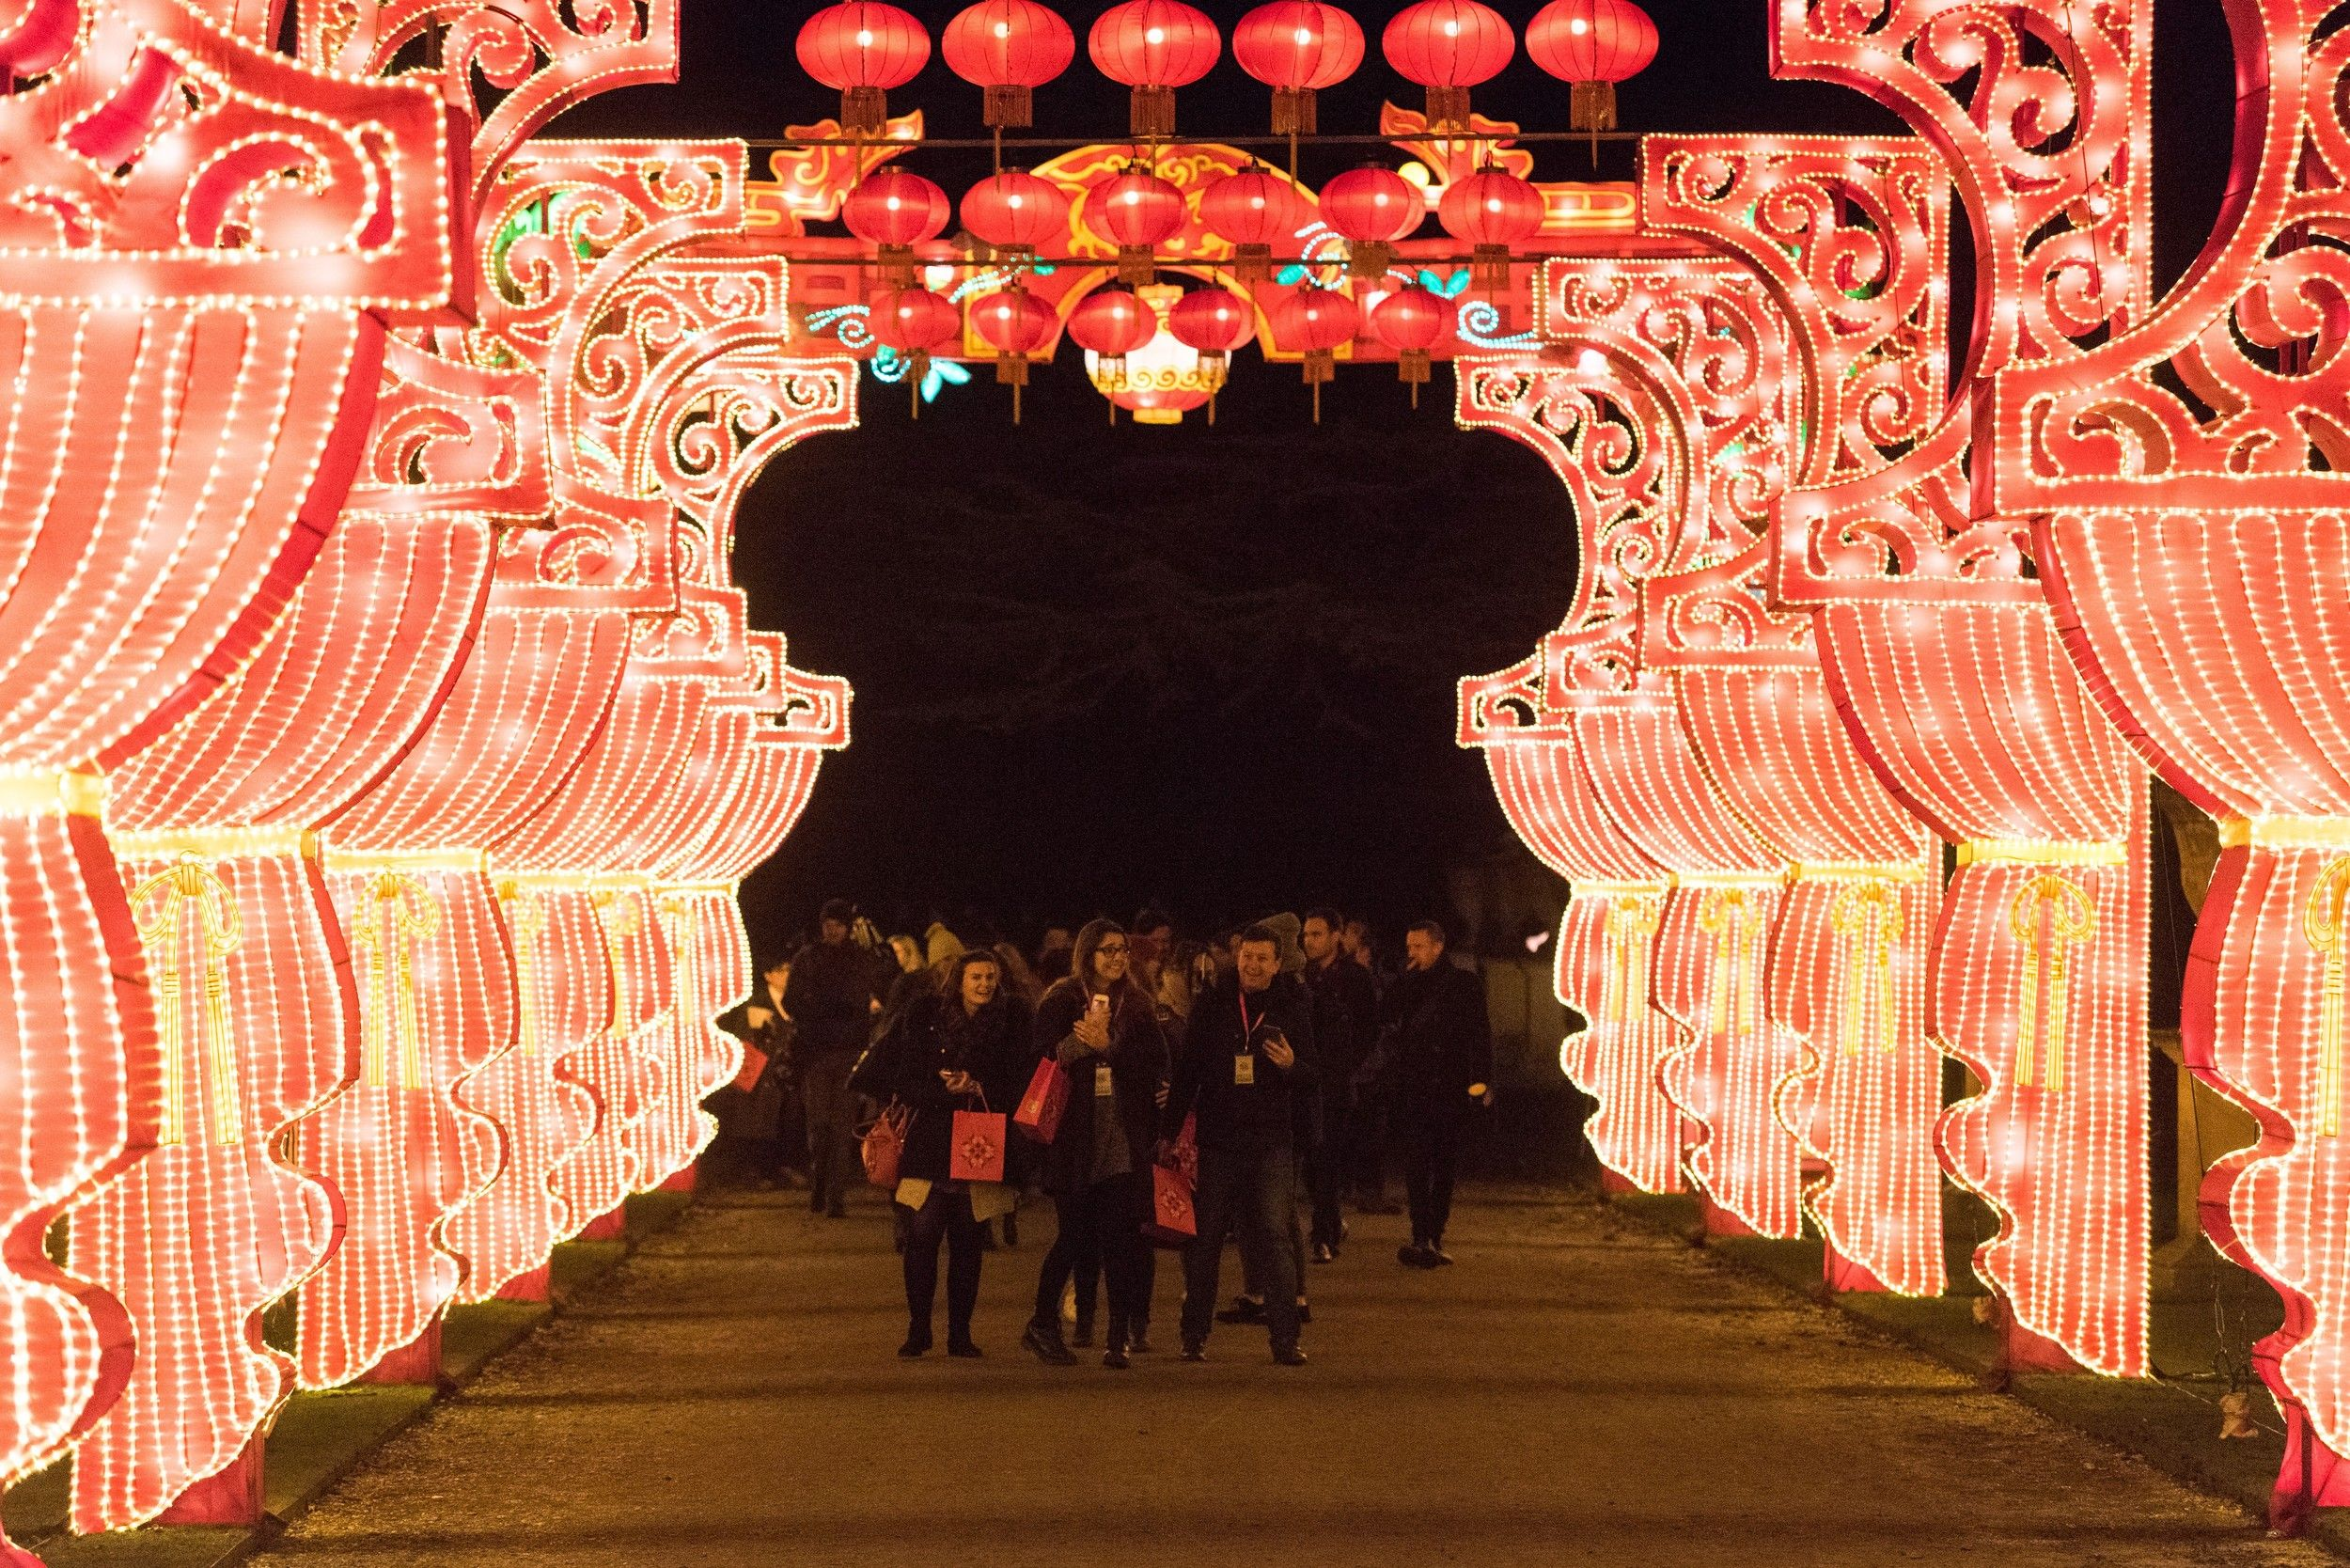 China's Silk Road hits London for Lunar New Year | Magical ...